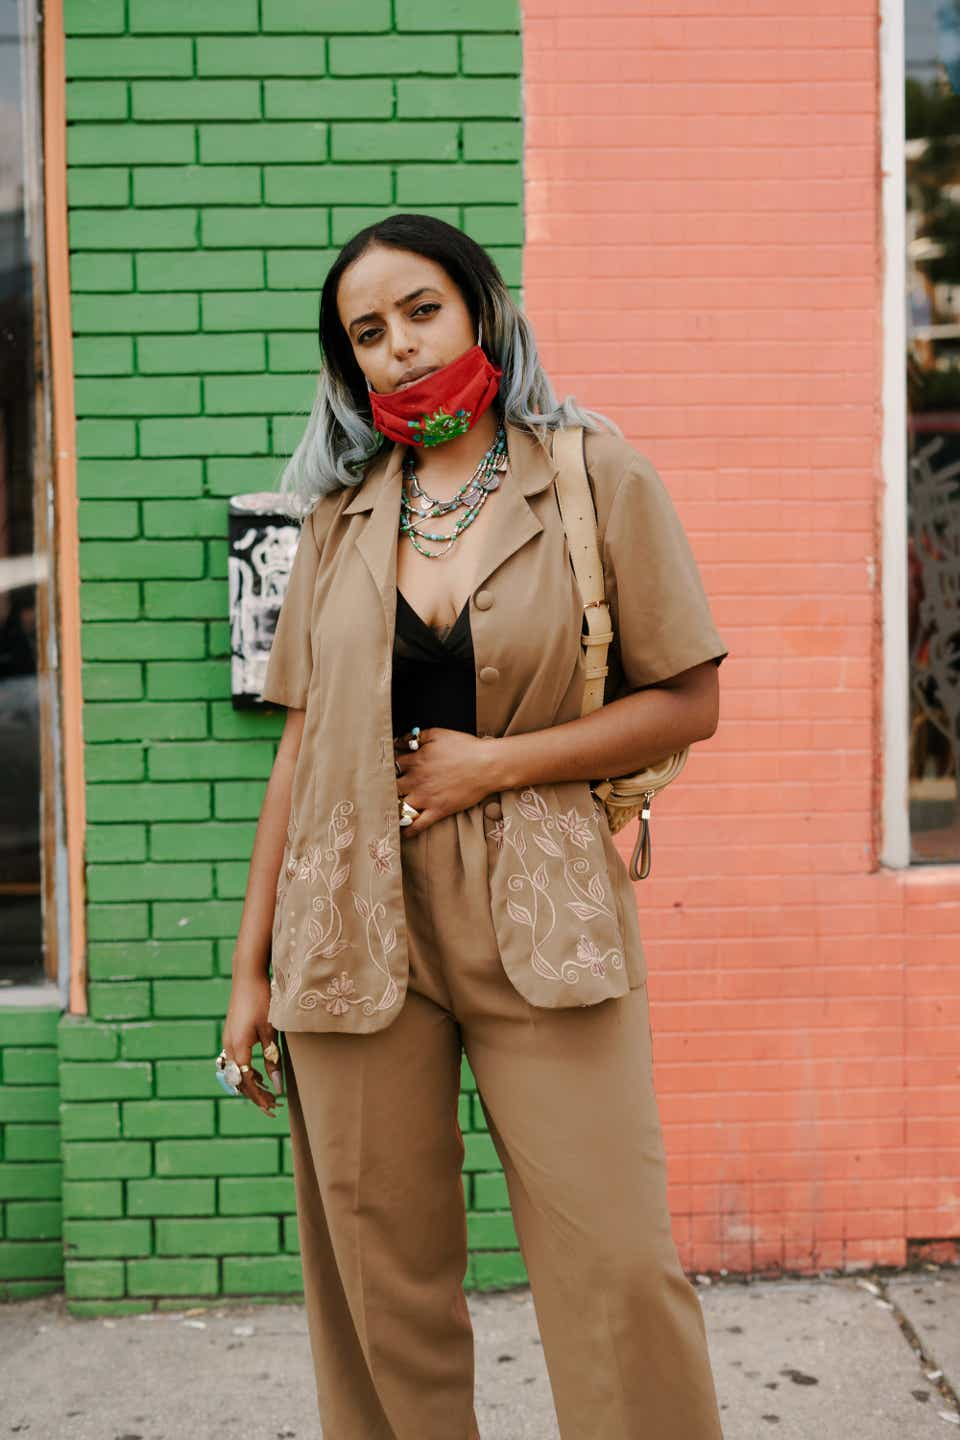 Devora is wearing a red mask and showing off her dyed silver hair. She has on a camel-colored suit with short sleeves, and a black tank top underneath.